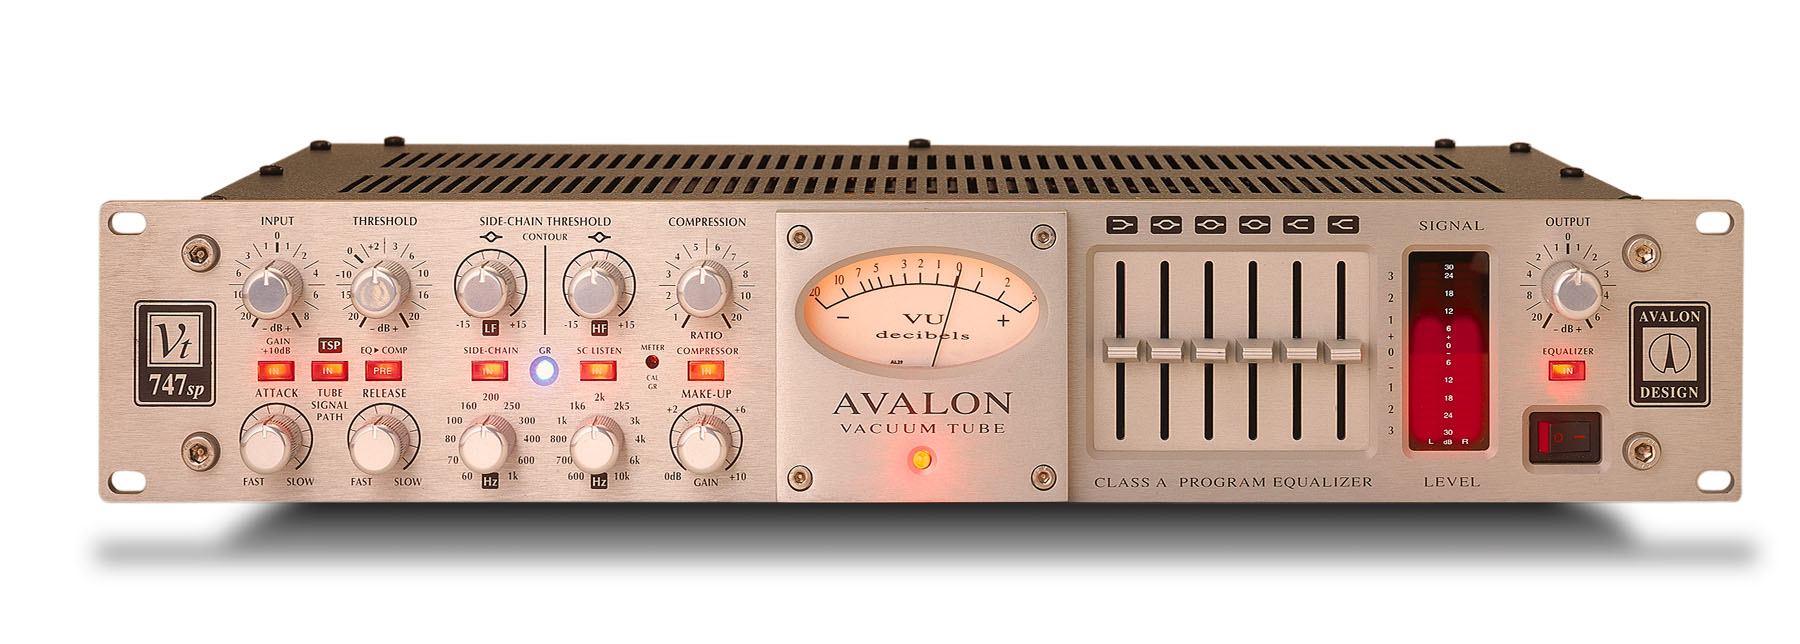 Avalon New Vt 747sp Specs Details Compressor Schematic Diagram Pro Click To See Enlarged Version